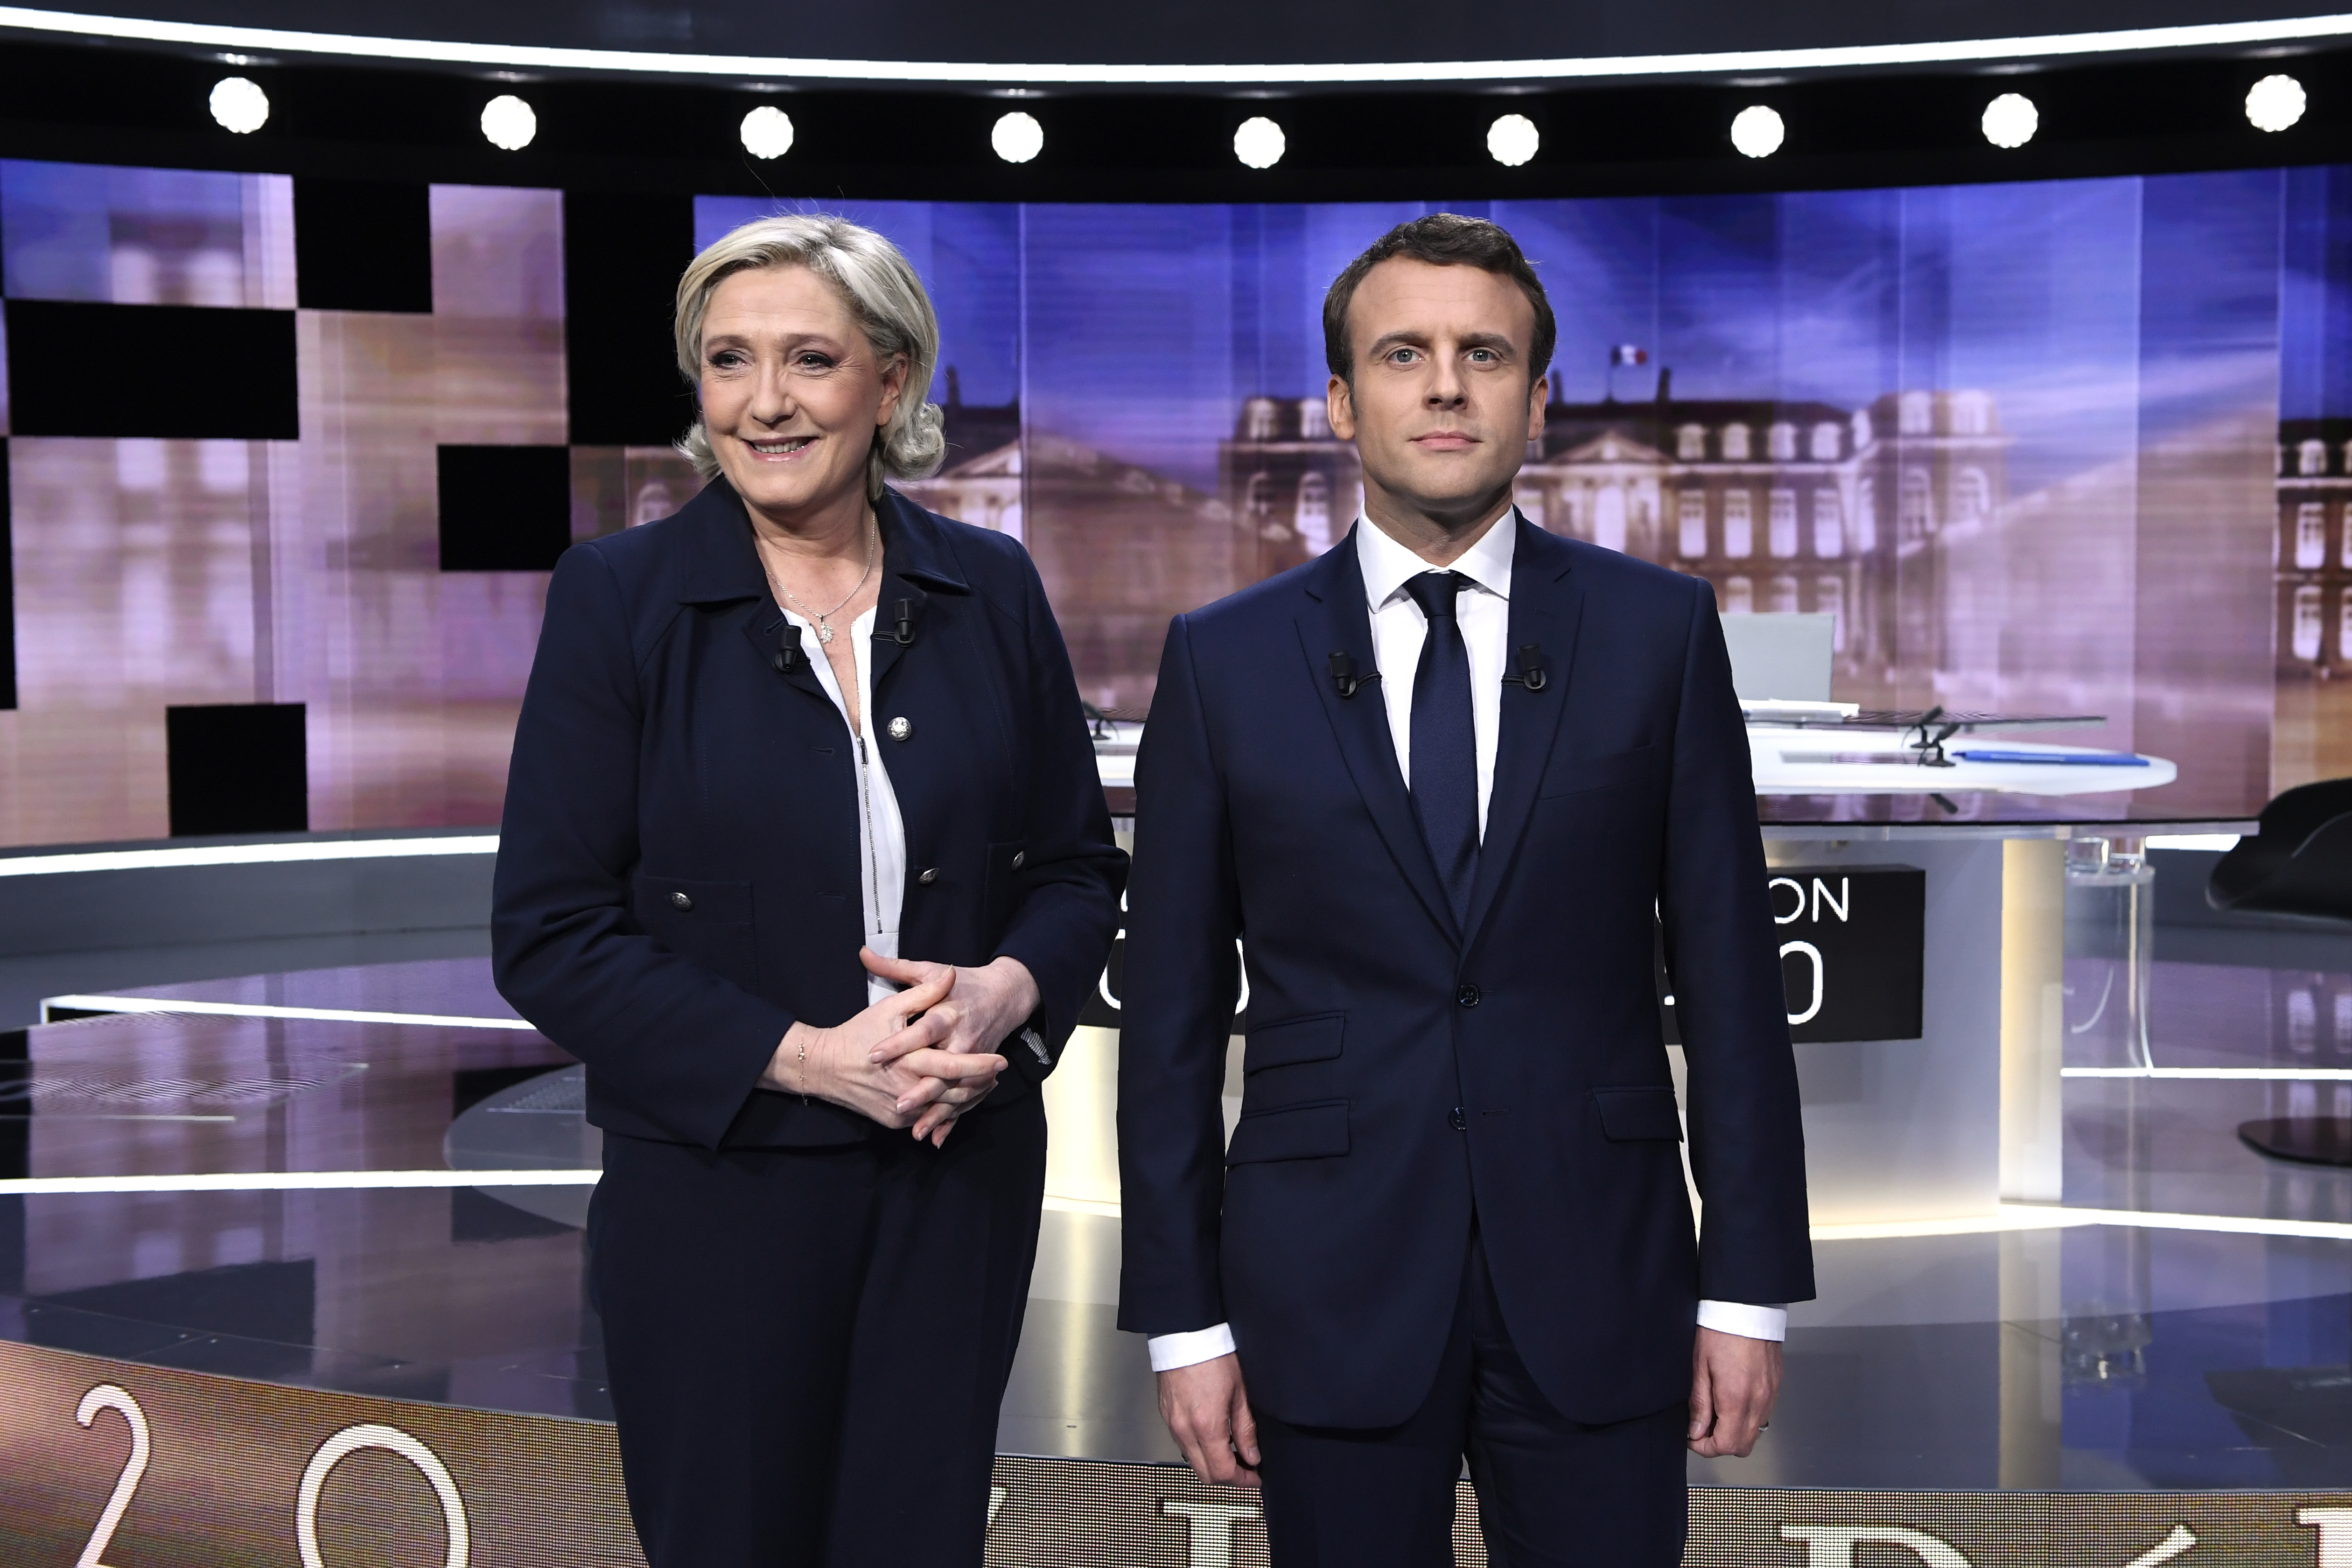 France elections 2017 live - A Bloody Final Debate Between Macron And Le Pen As France Heads Toward Election Runoff